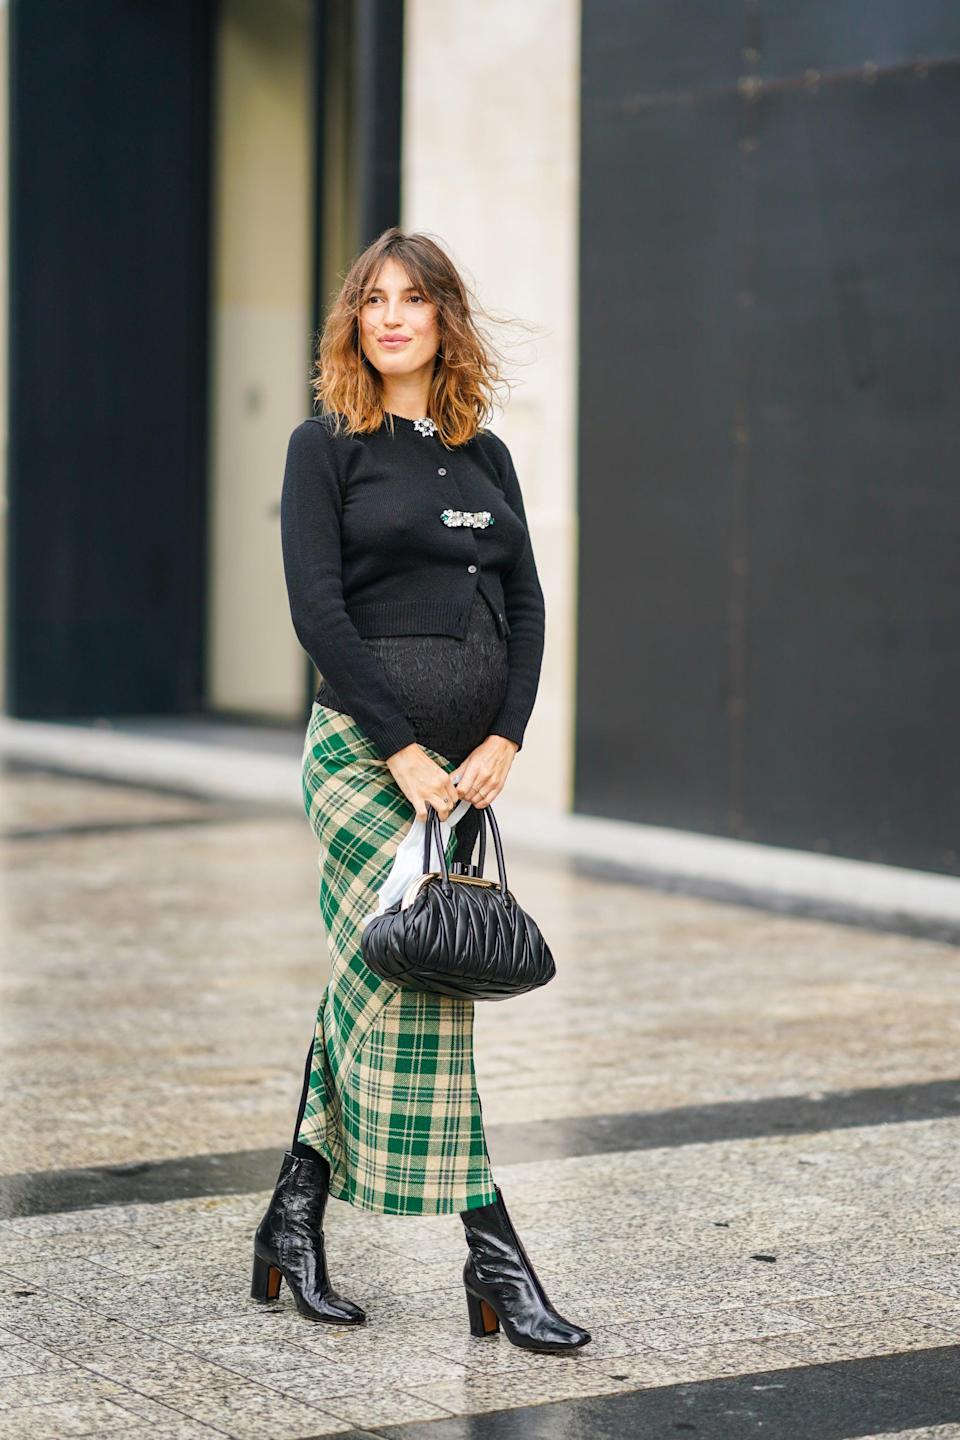 <p>Behold, the trend that embodies all things feminine and elegant. Think locks and similar handbag closures that are typically seen on clutches, but come prepared to embrace them with top handles and shoulder bags for 2021. A plus? We can pretty much guarantee this trend as the easiest way to dress up any outfit.</p>